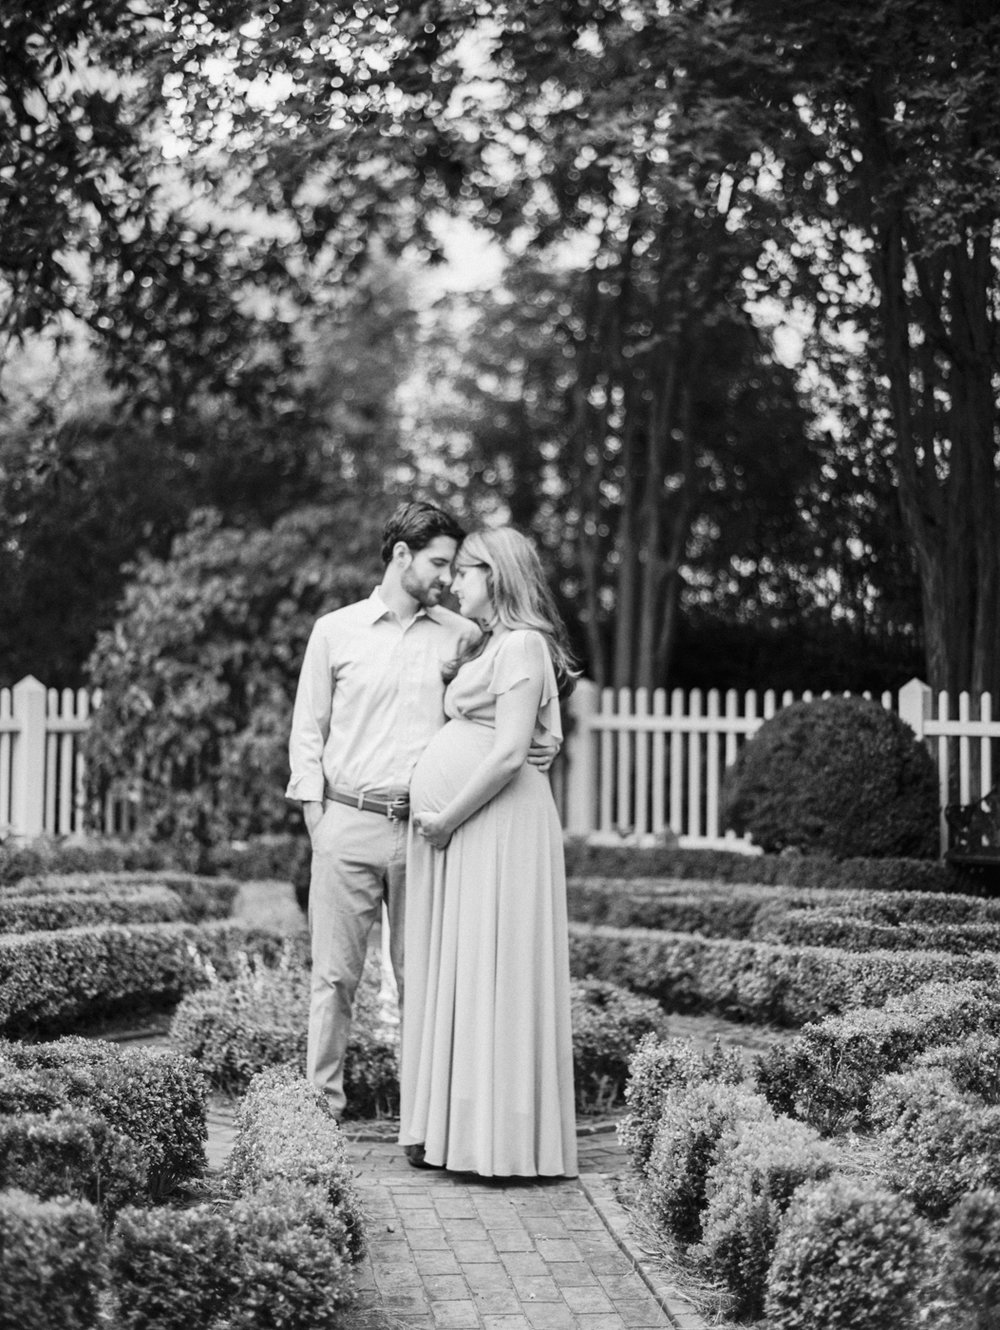 shackleford maternity four corners photography athens maternity photographer anna shackleford photography atlanta film photographer maternity photography-17.jpg